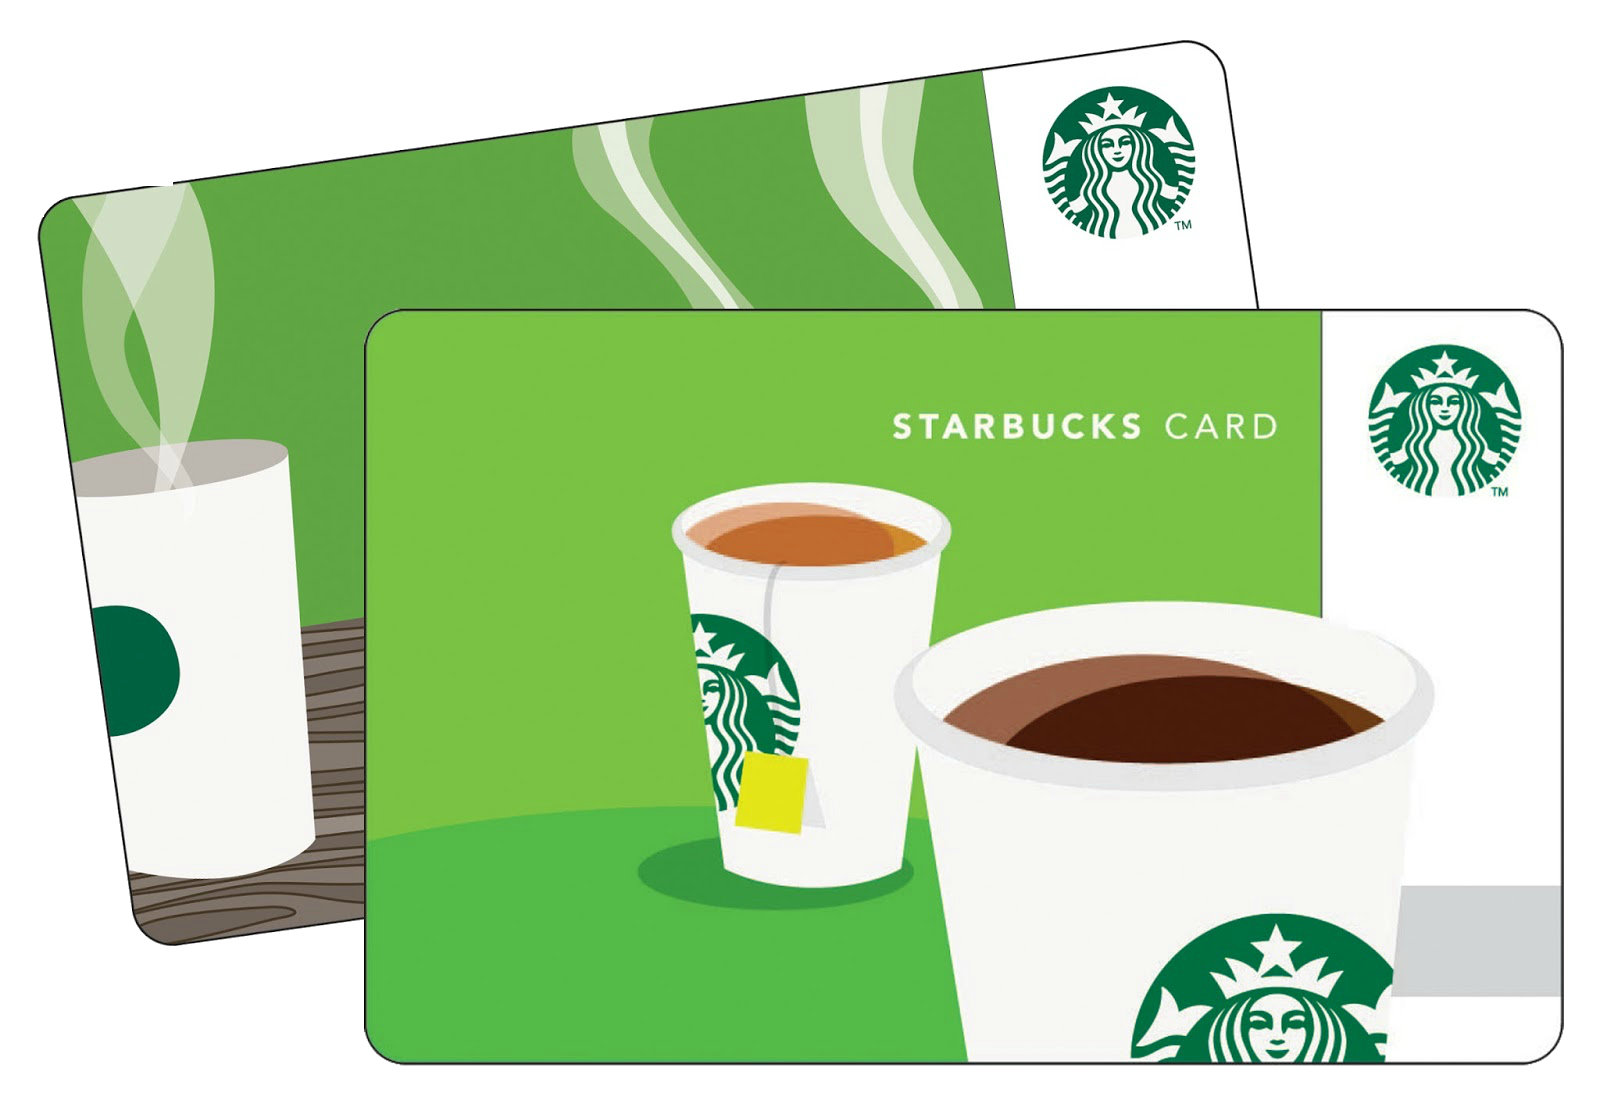 check balance starbucks gift card how to check starbucks gift card balance at www starbucks 4168